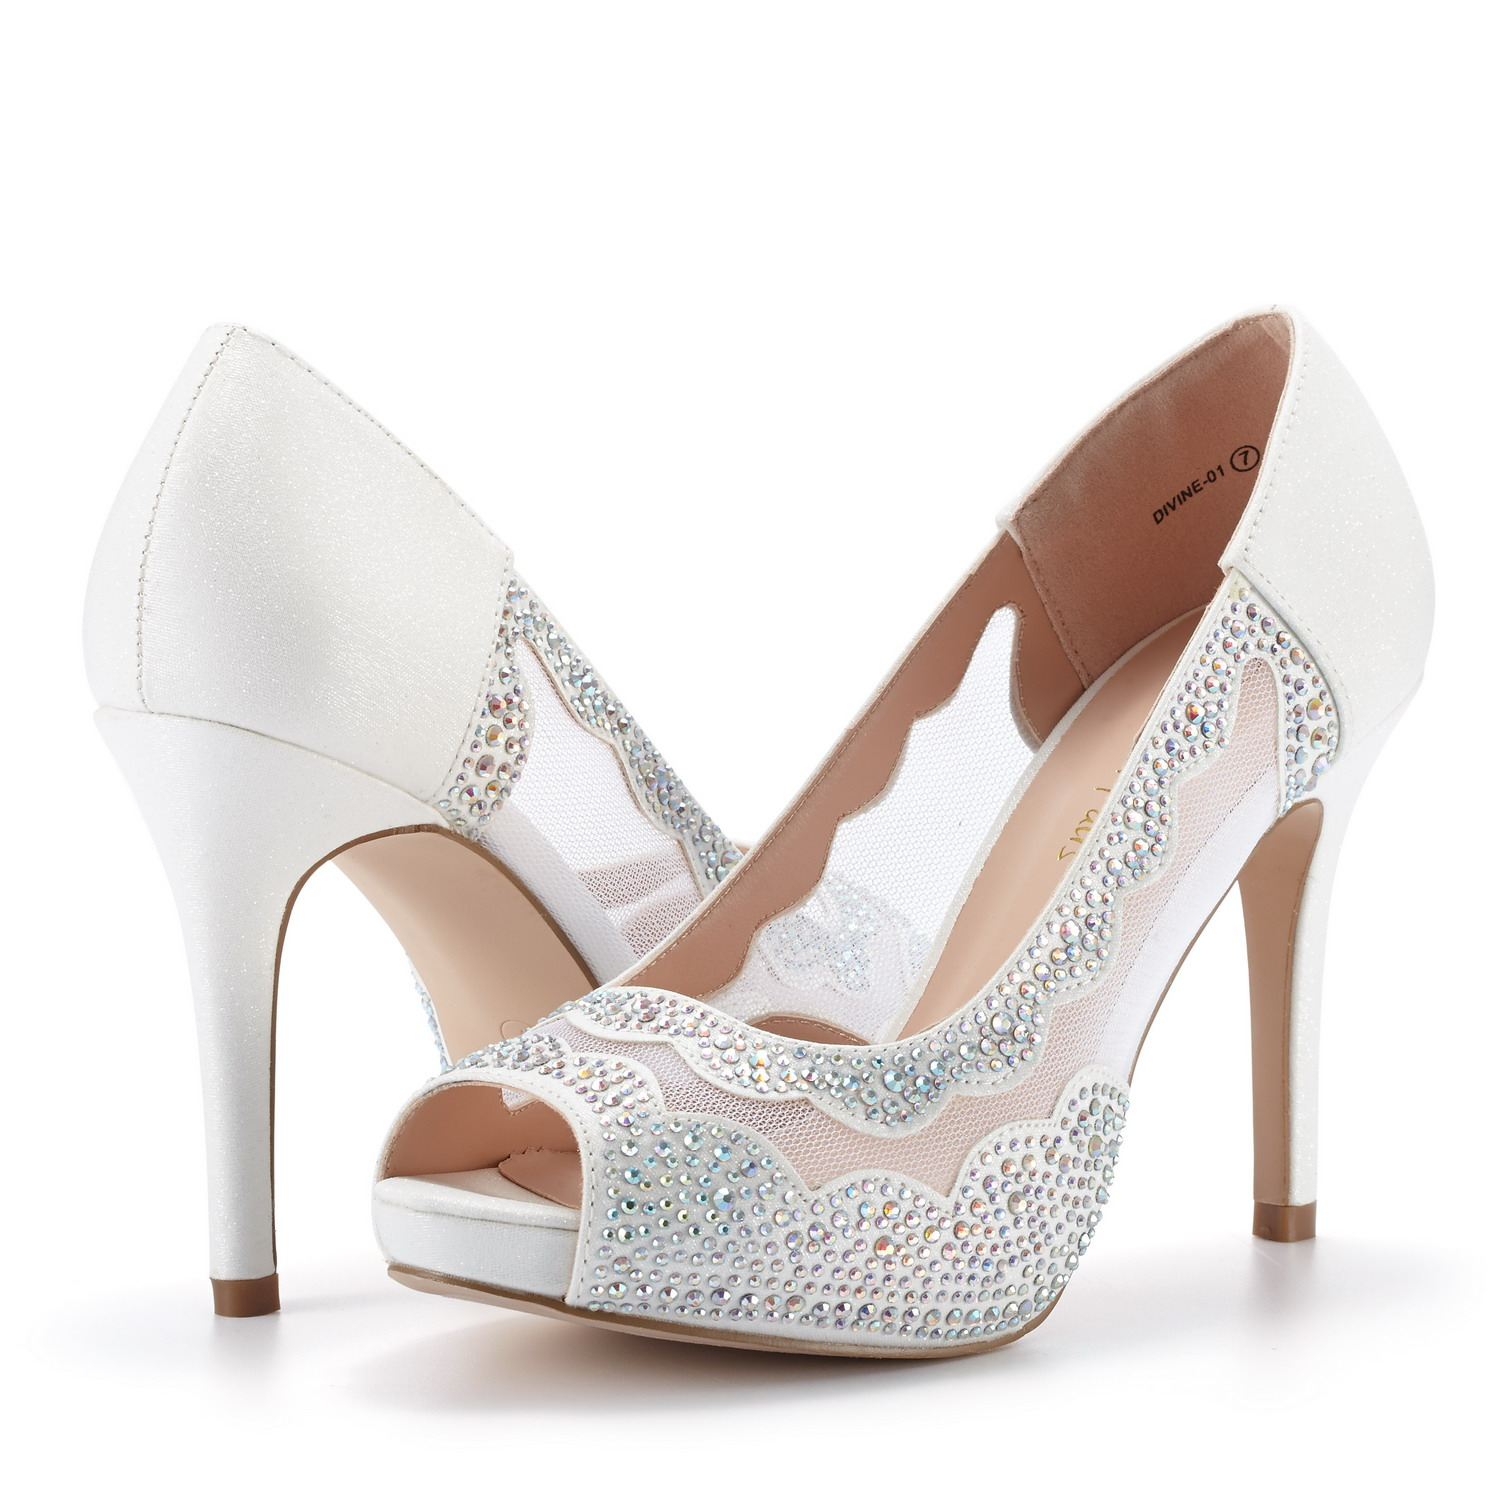 DREAM-PAIRS-Women-Divine-01-Peep-Toe-Dress-Wedding-High-Heels-Pump-Shoes-Sandals thumbnail 23